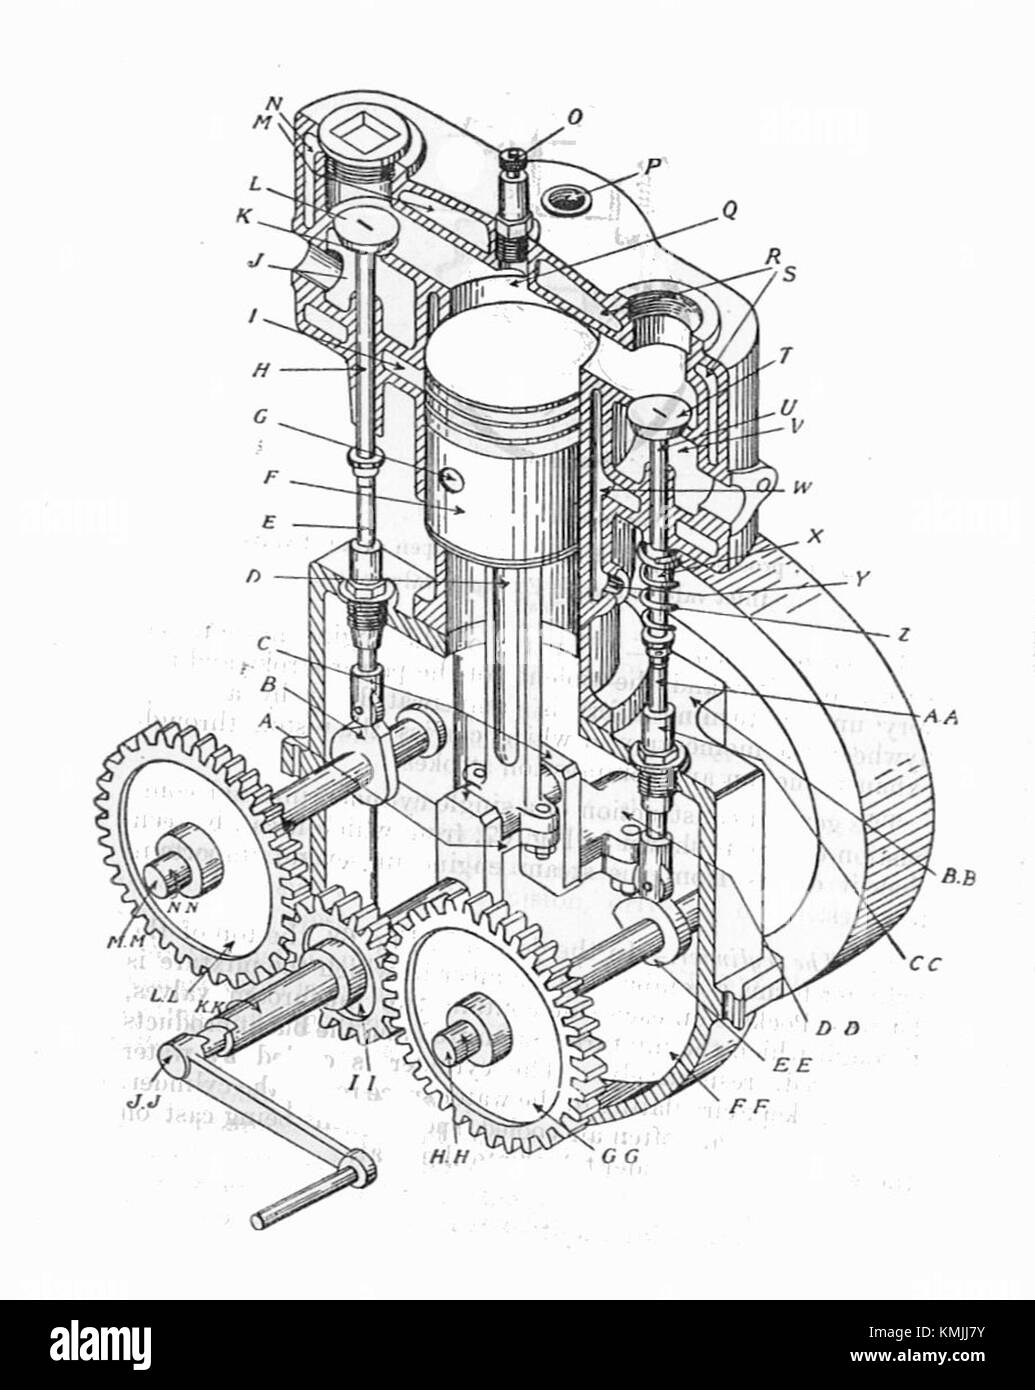 Counterweight Single Cylinder Engine Diagram Guide And Simple Steam Basic 4 Wiring Library Rh 19 Kandelhof Restaurant De Motorcycle